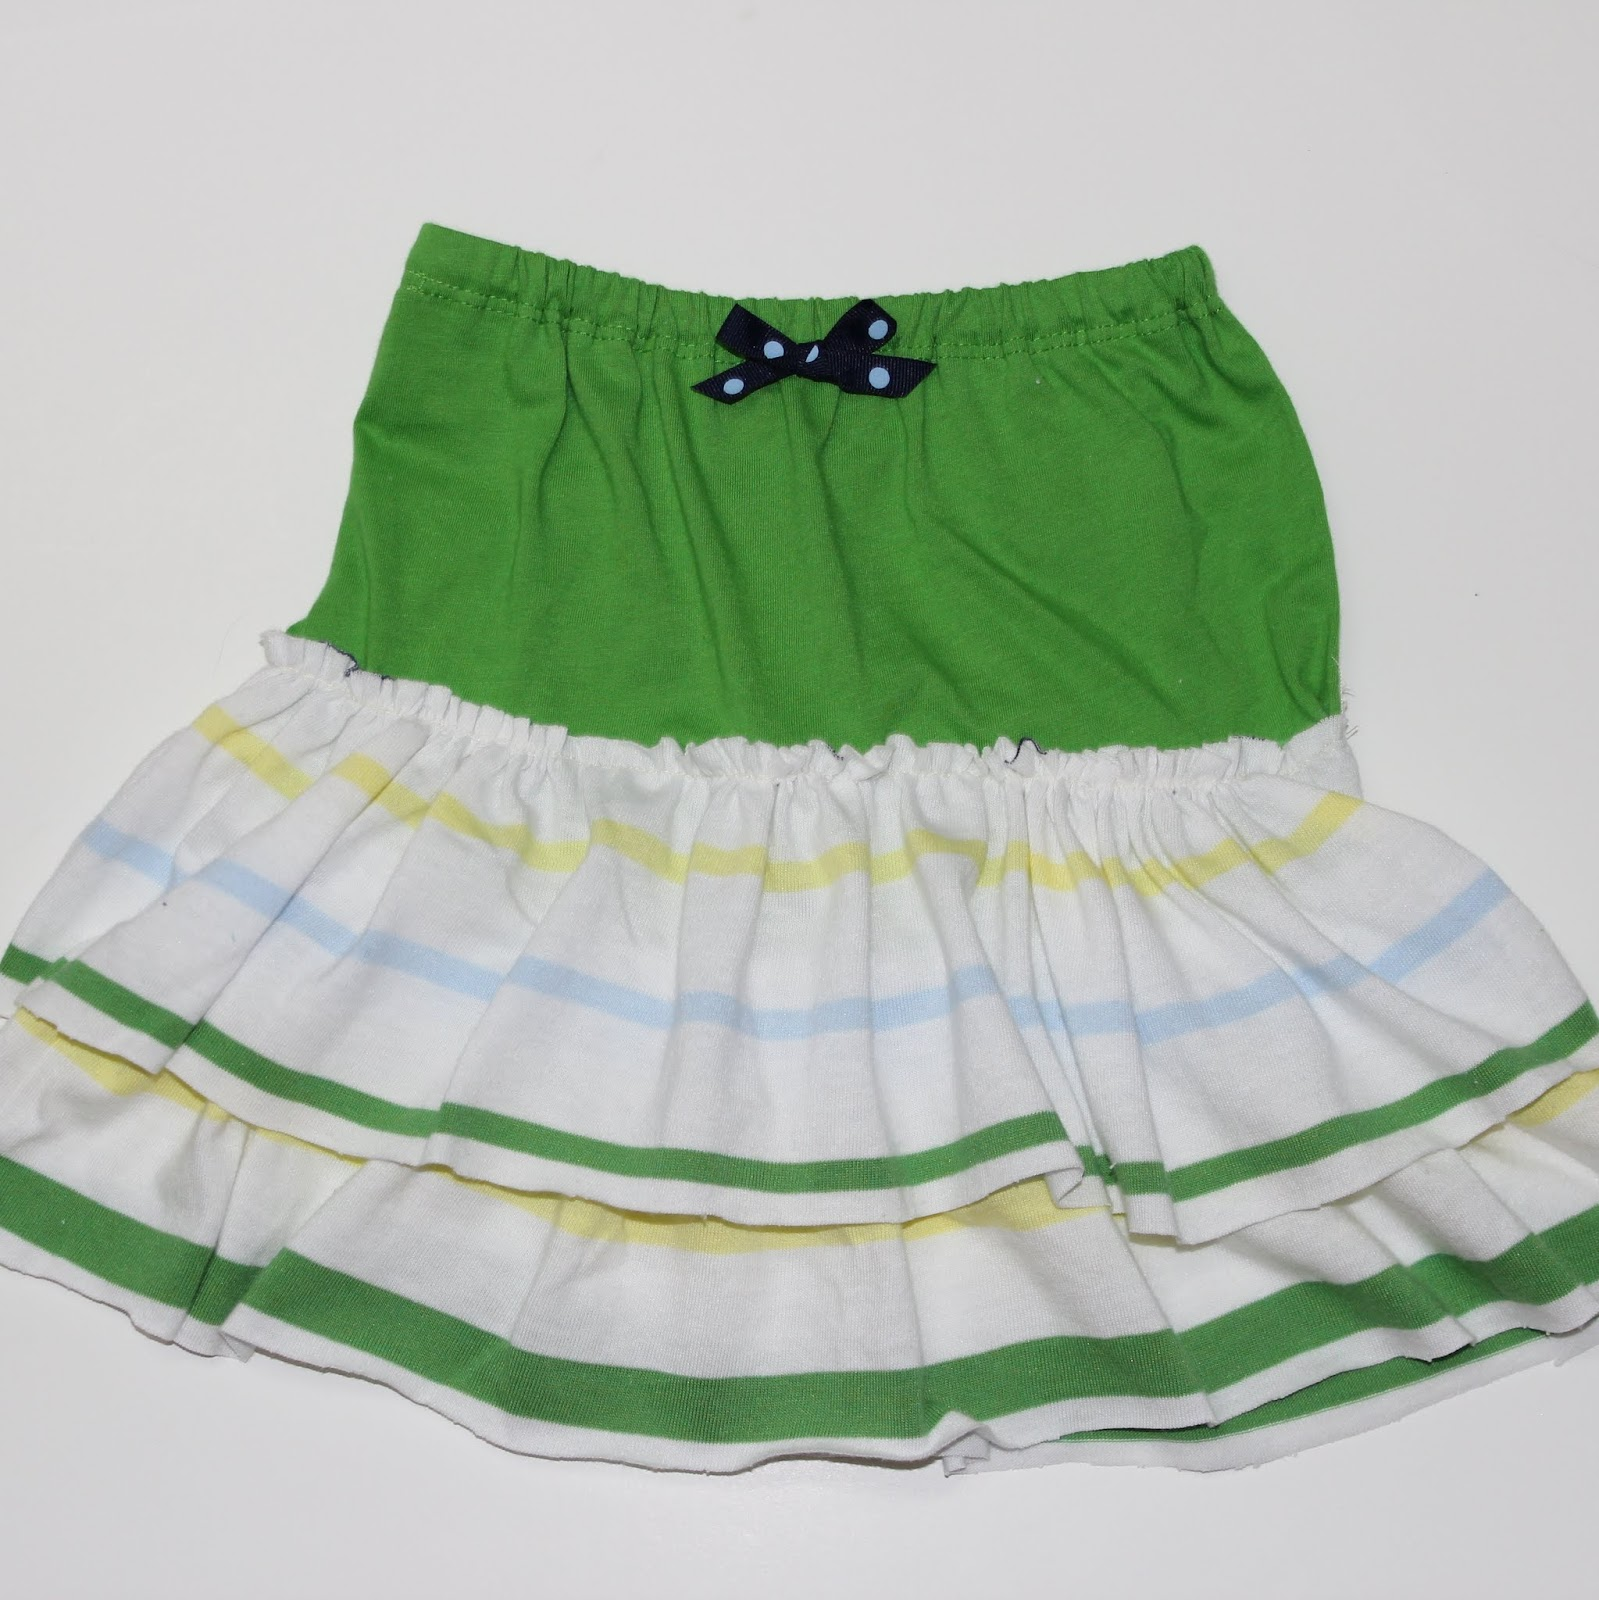 You searched for: white ruffle skirt! Etsy is the home to thousands of handmade, vintage, and one-of-a-kind products and gifts related to your search. No matter what you're looking for or where you are in the world, our global marketplace of sellers can help you find unique and affordable options. Let's get started!